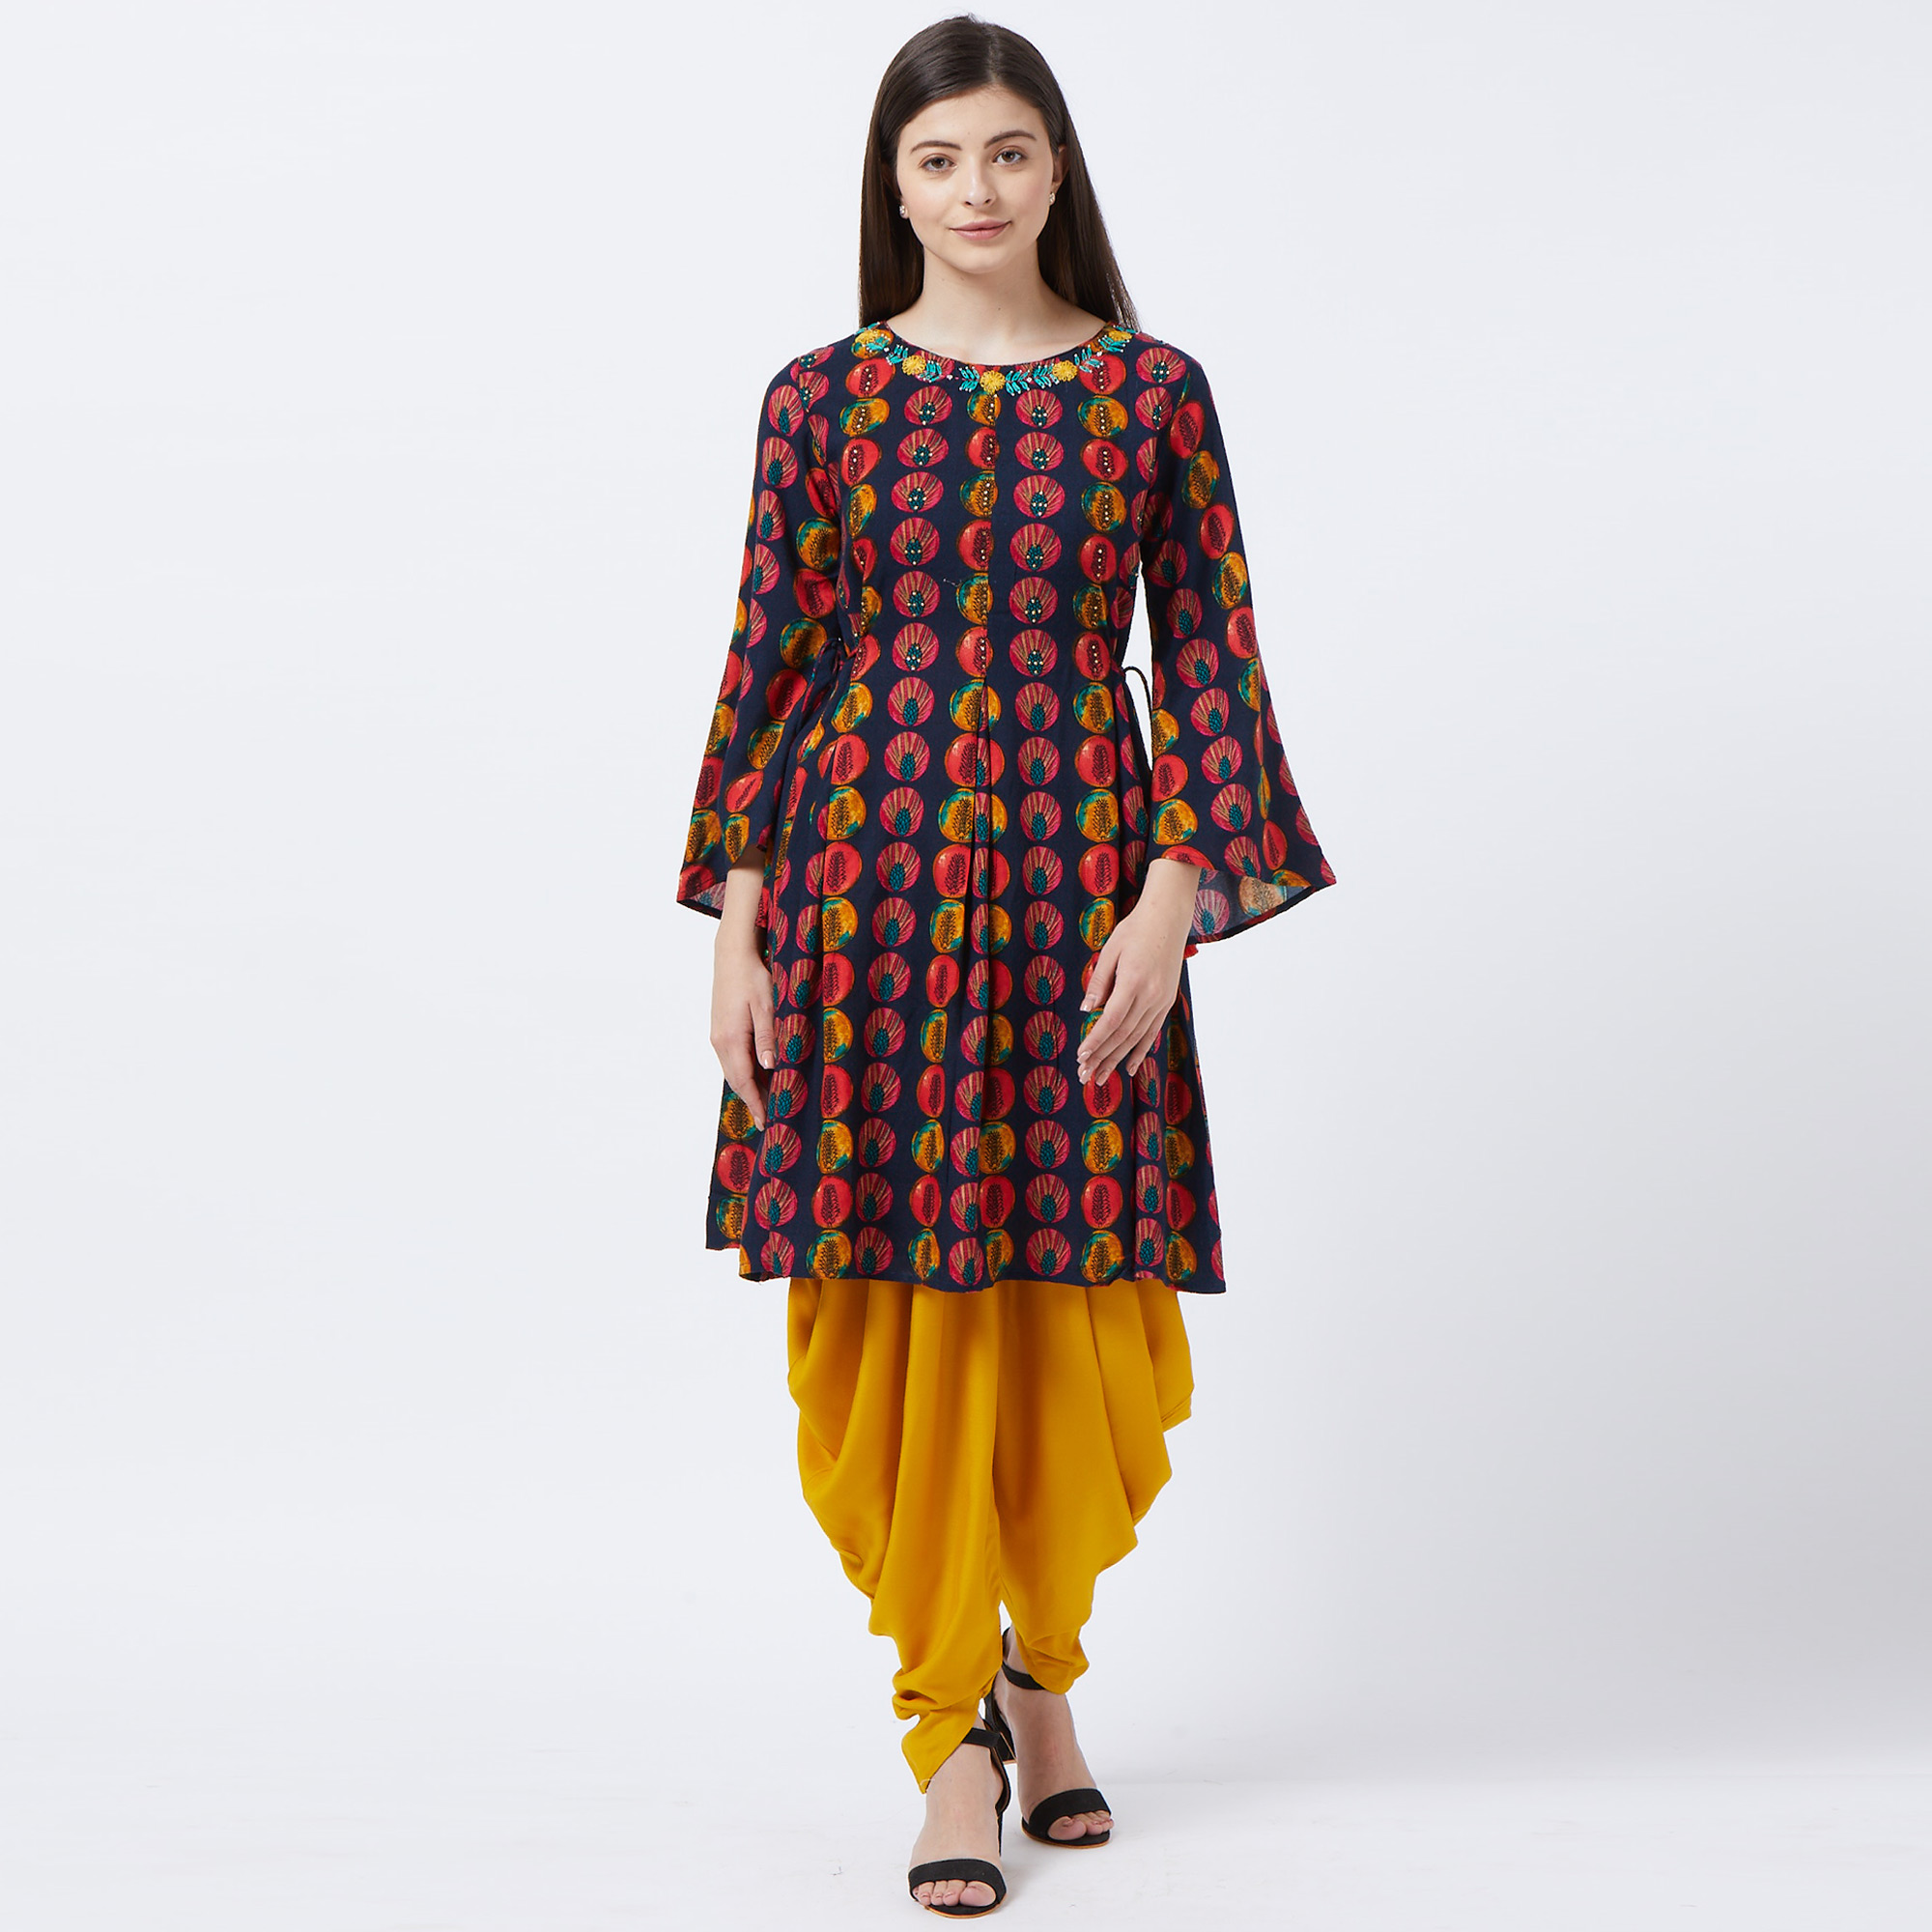 Engrossing Navy Blue Colored Partywear Embroidered Rayon Kurti And Dhoti Set